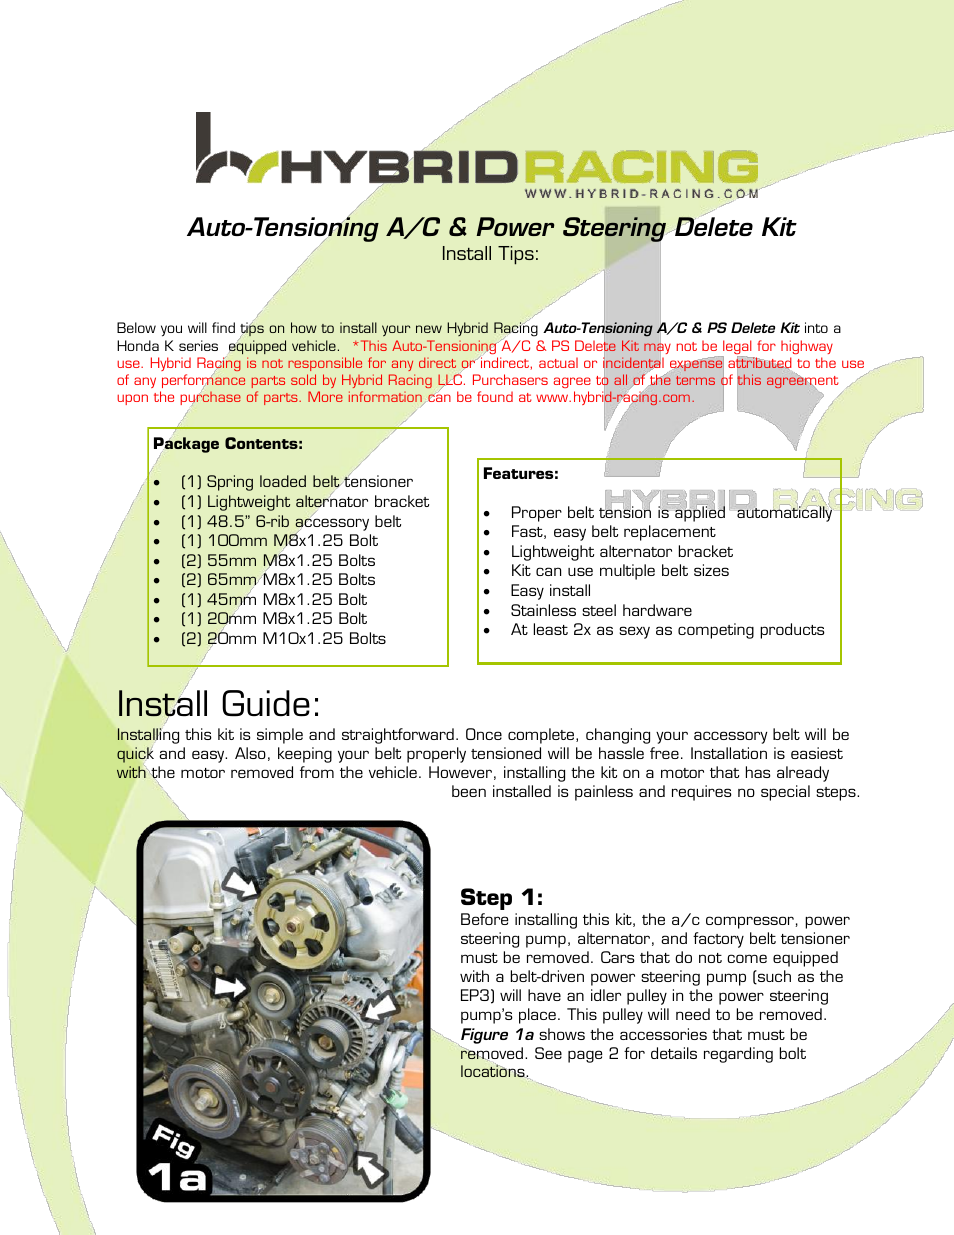 Hybrid Racing Hr Autotensioning Ac And Power Steering Removal Kit Detailed A C Compressor Bracketry Installation Diagram User Manual 6 Pages